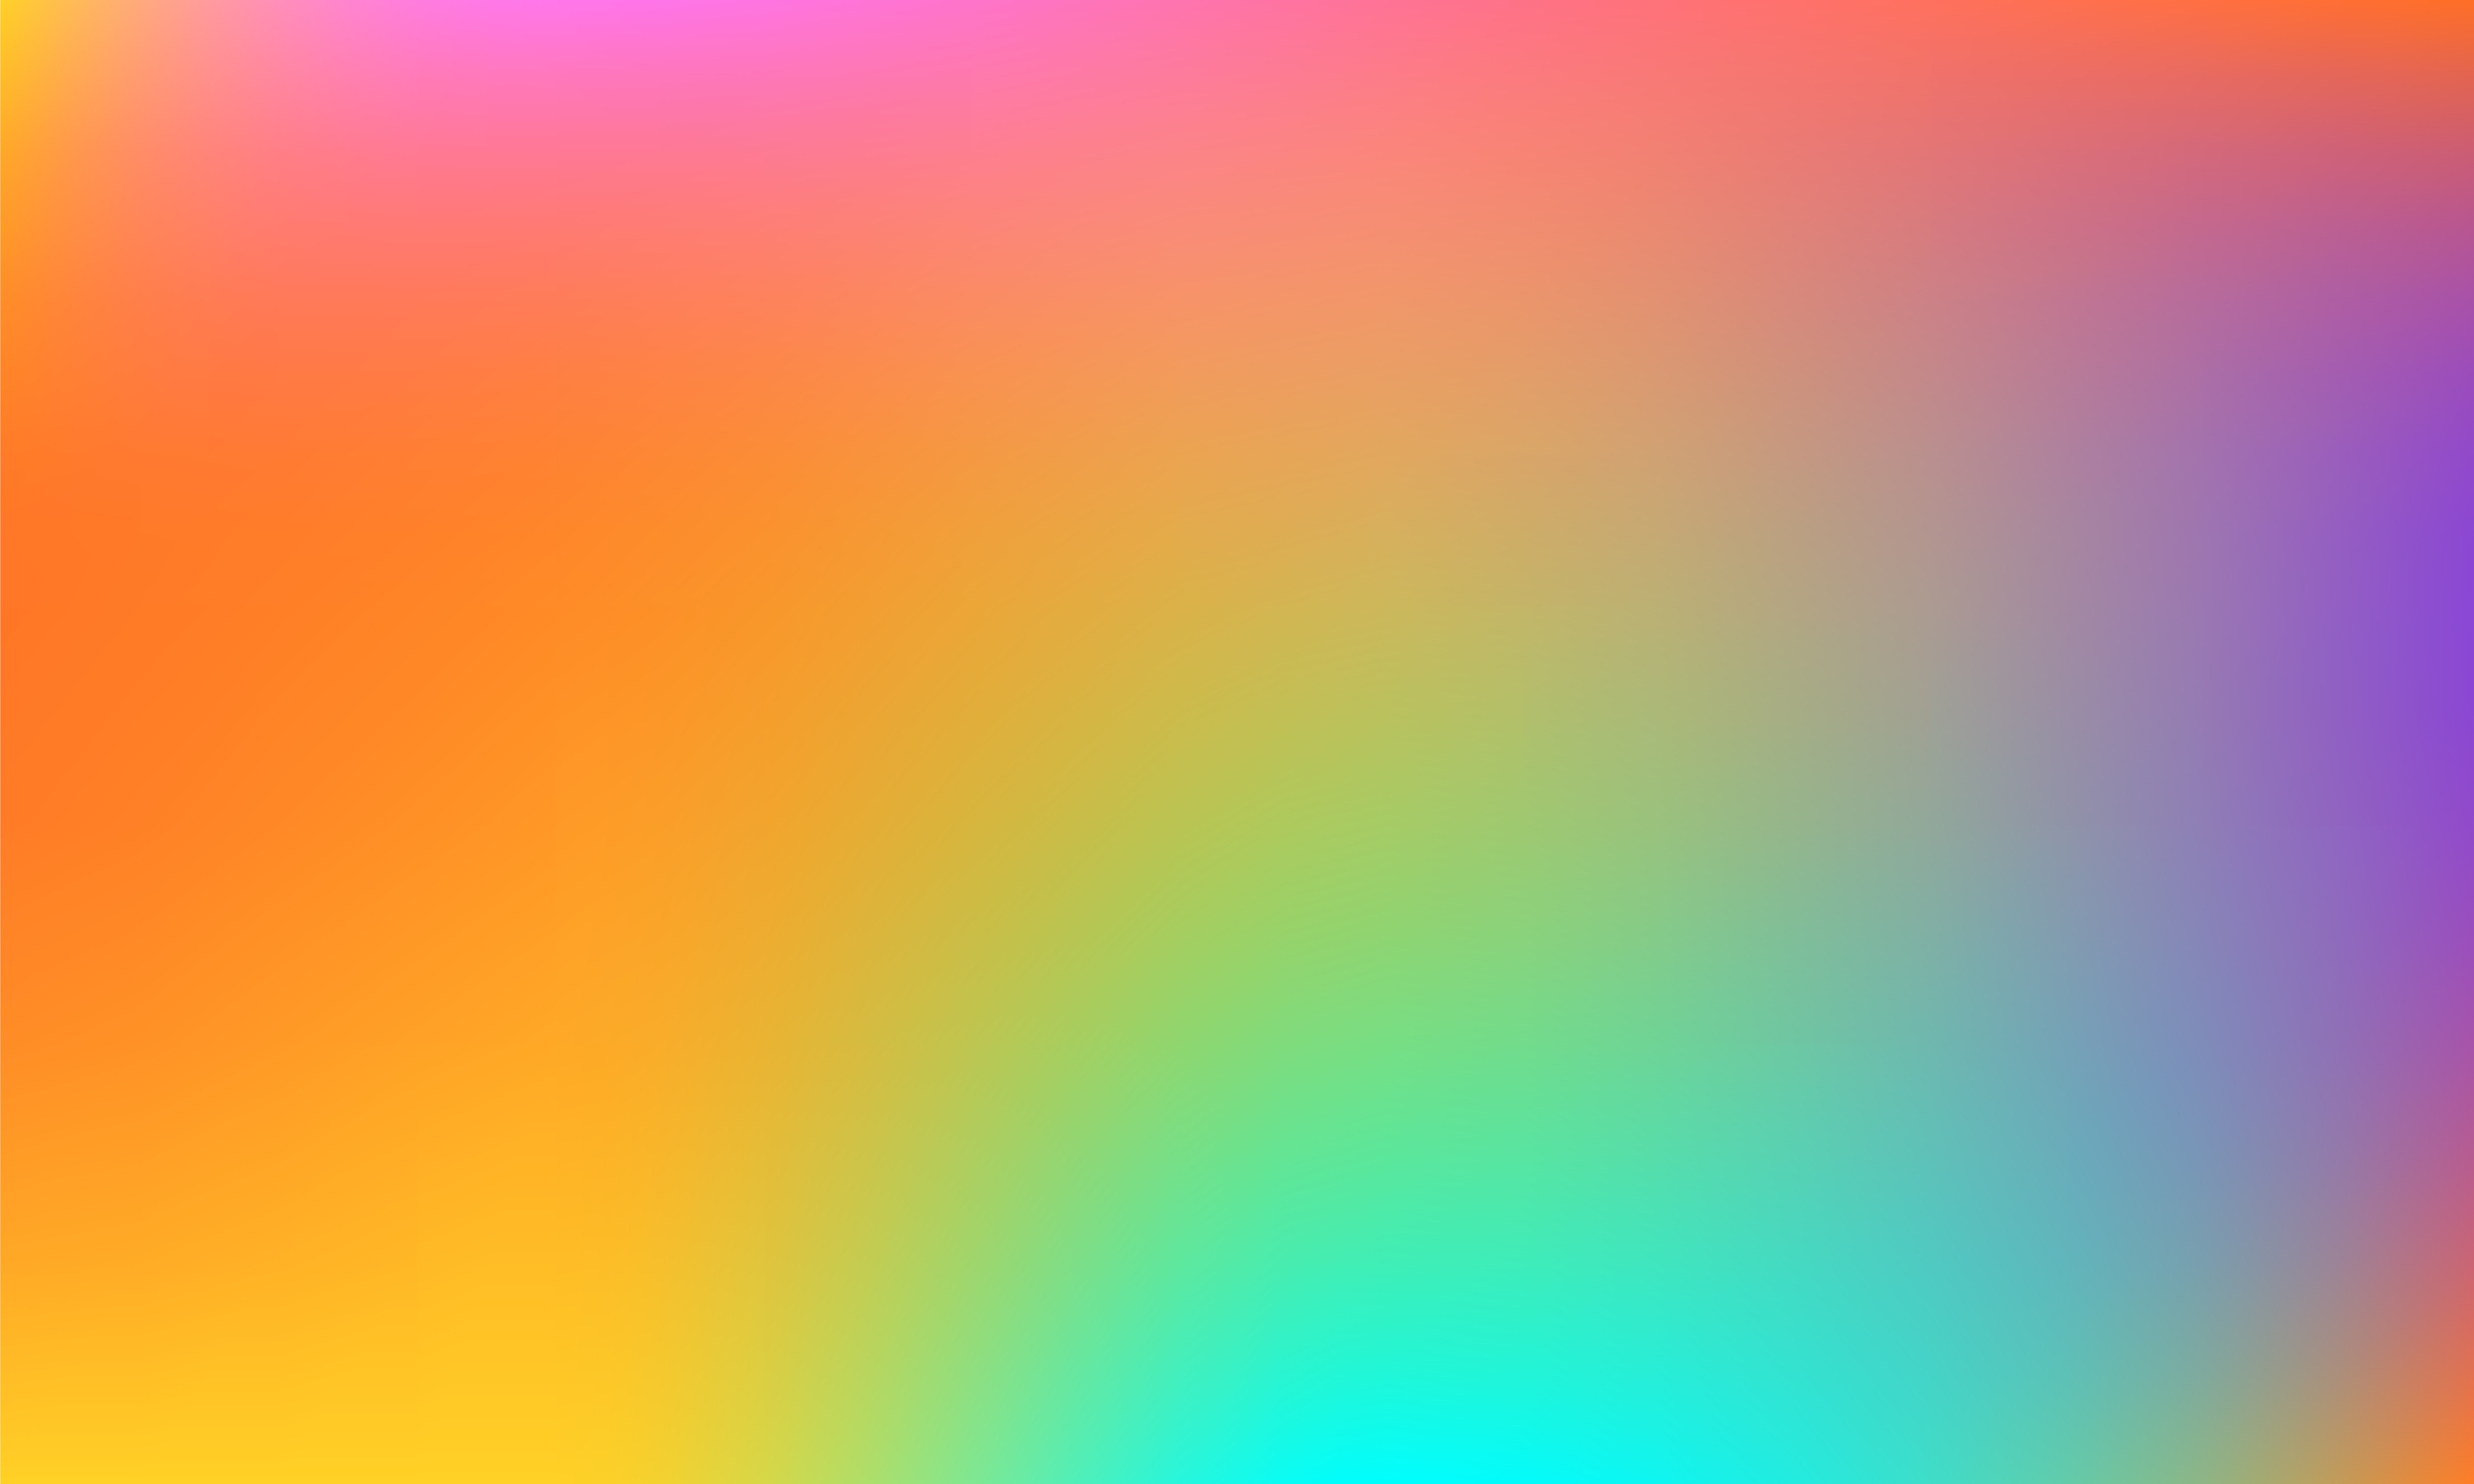 Abstract rainbow color background - Download Free Vectors ...